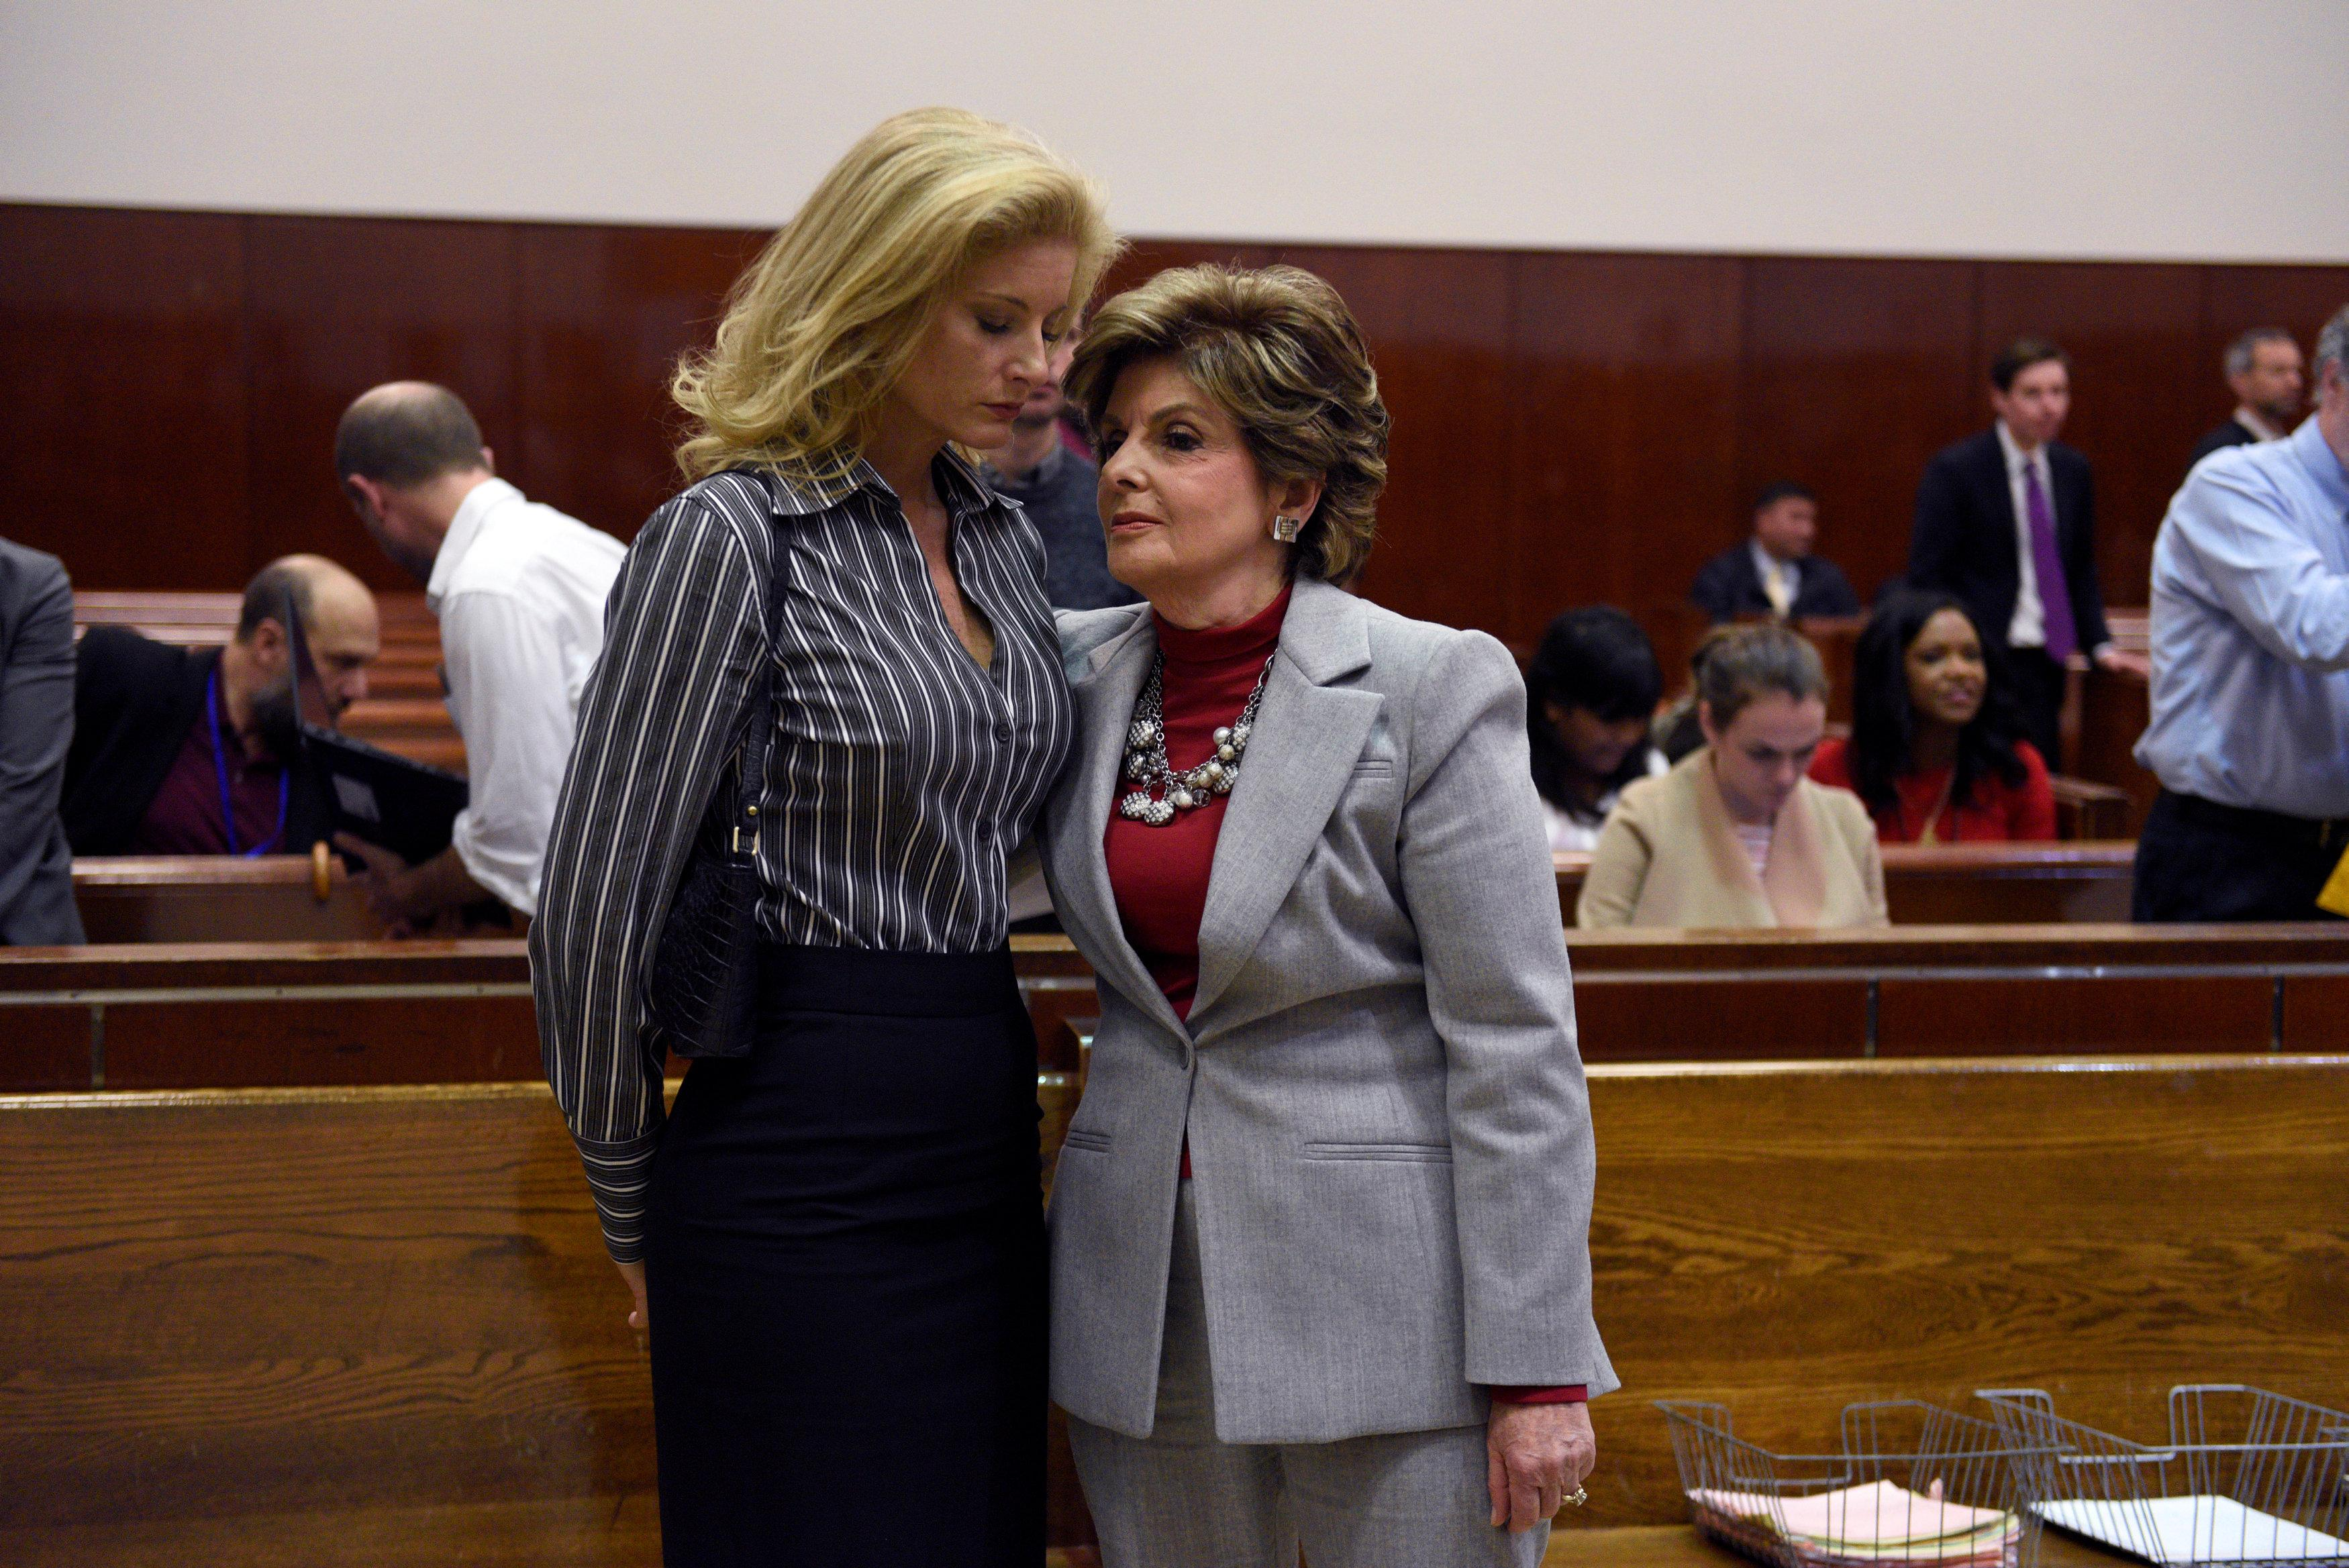 Summer Zervos (C), a former contestant on The Apprentice, leaves New York State Supreme Court with attorney Gloria Allred (R) after a hearing on the defamation case against U.S. President Donald Trump in Manhattan, New York, U.S., December 5, 2017.  Barry Williams/Pool